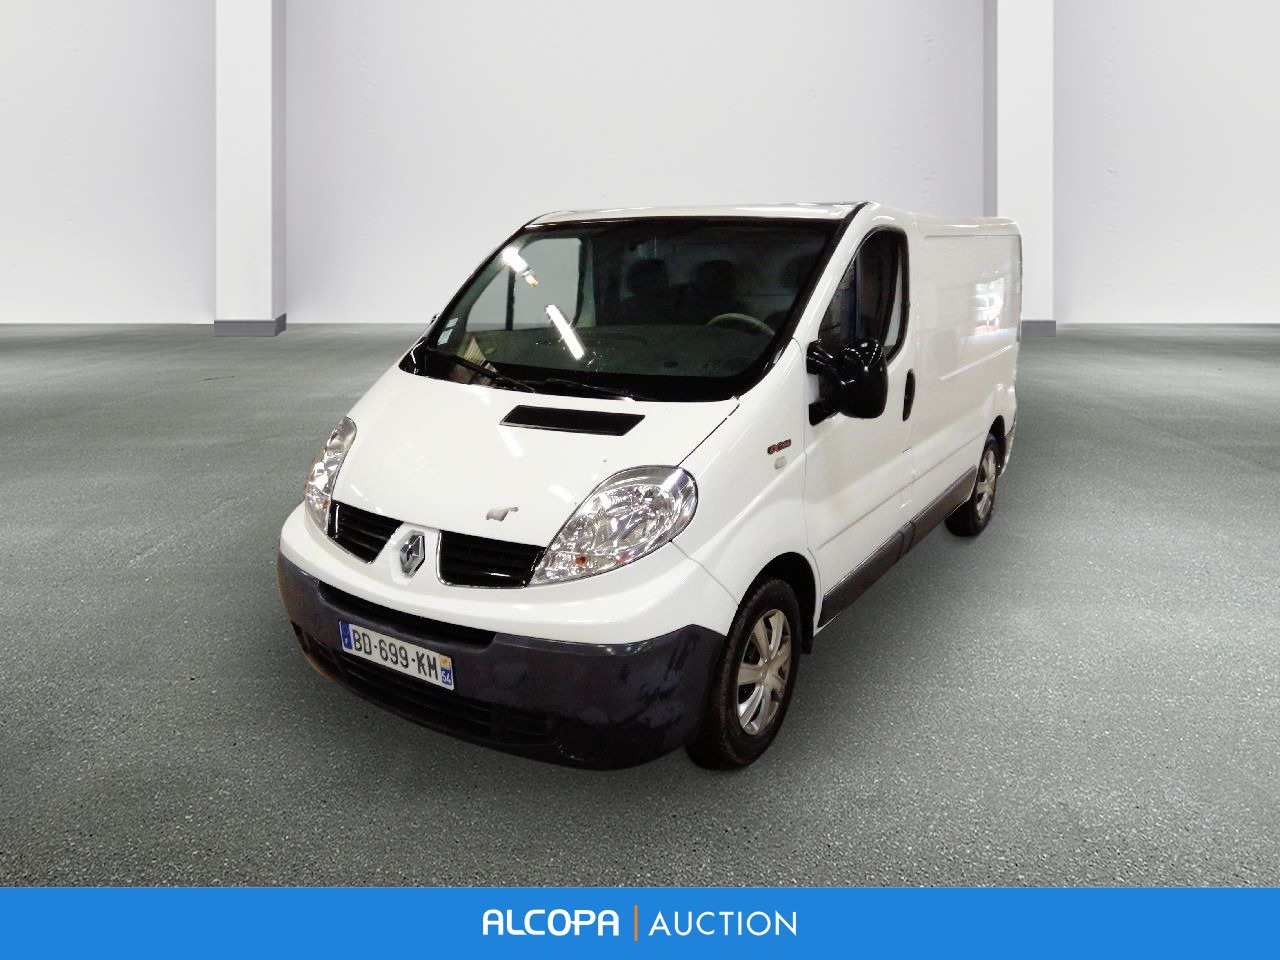 renault trafic fourgon trafic fgn 2 0 dci 90 l1h1 1000 kg serie speciale extra alcopa auction. Black Bedroom Furniture Sets. Home Design Ideas